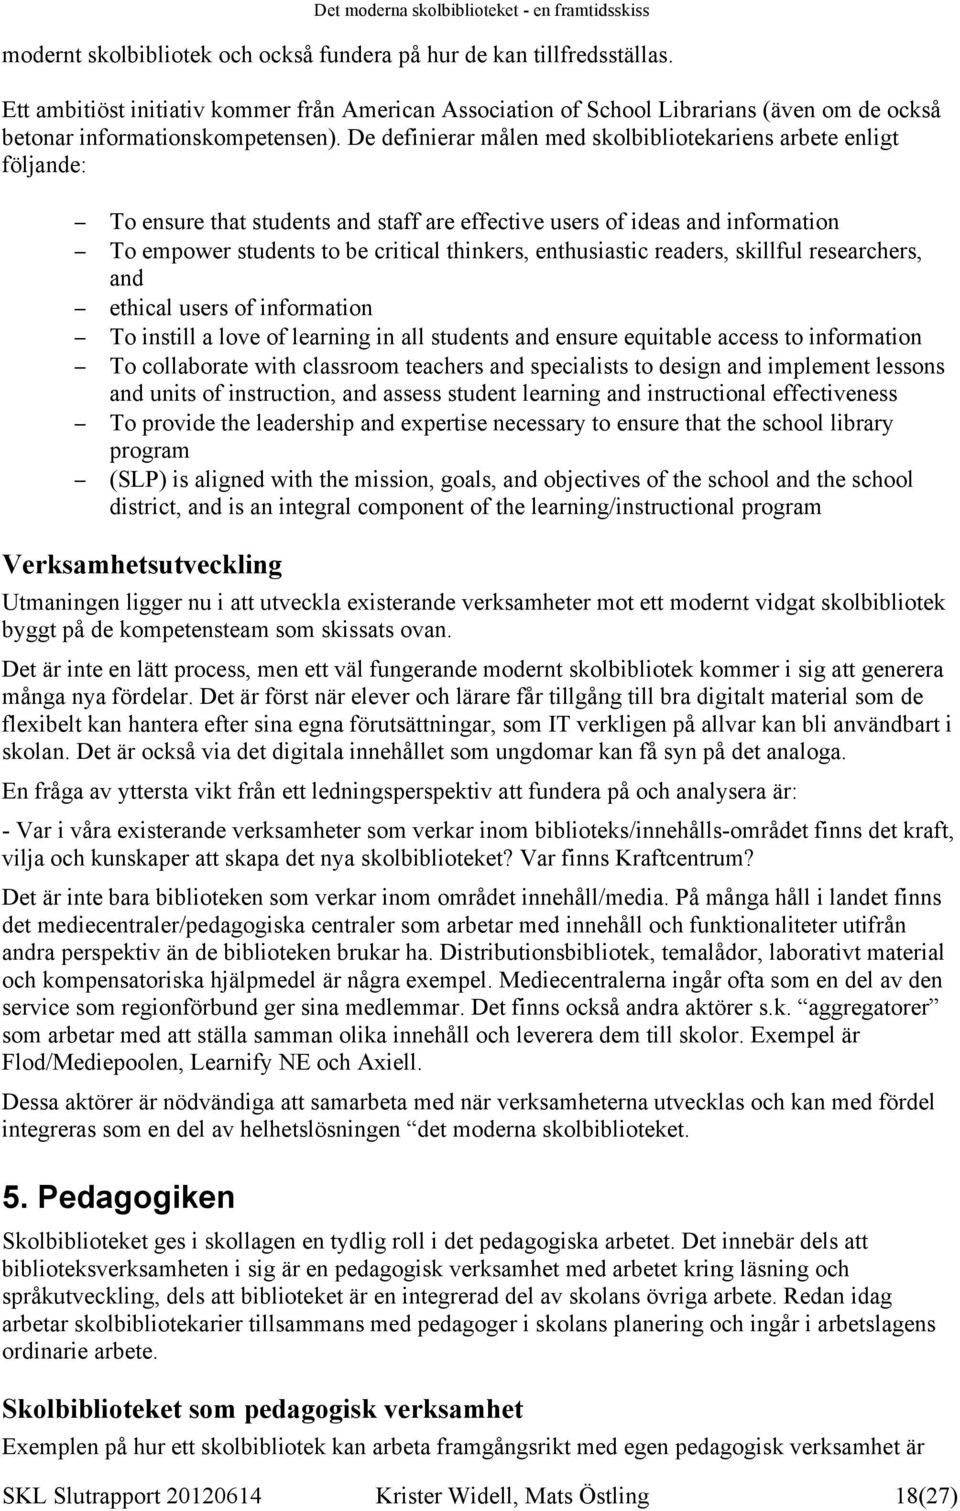 De definierar målen med skolbibliotekariens arbete enligt följande: To ensure that students and staff are effective users of ideas and information To empower students to be critical thinkers,